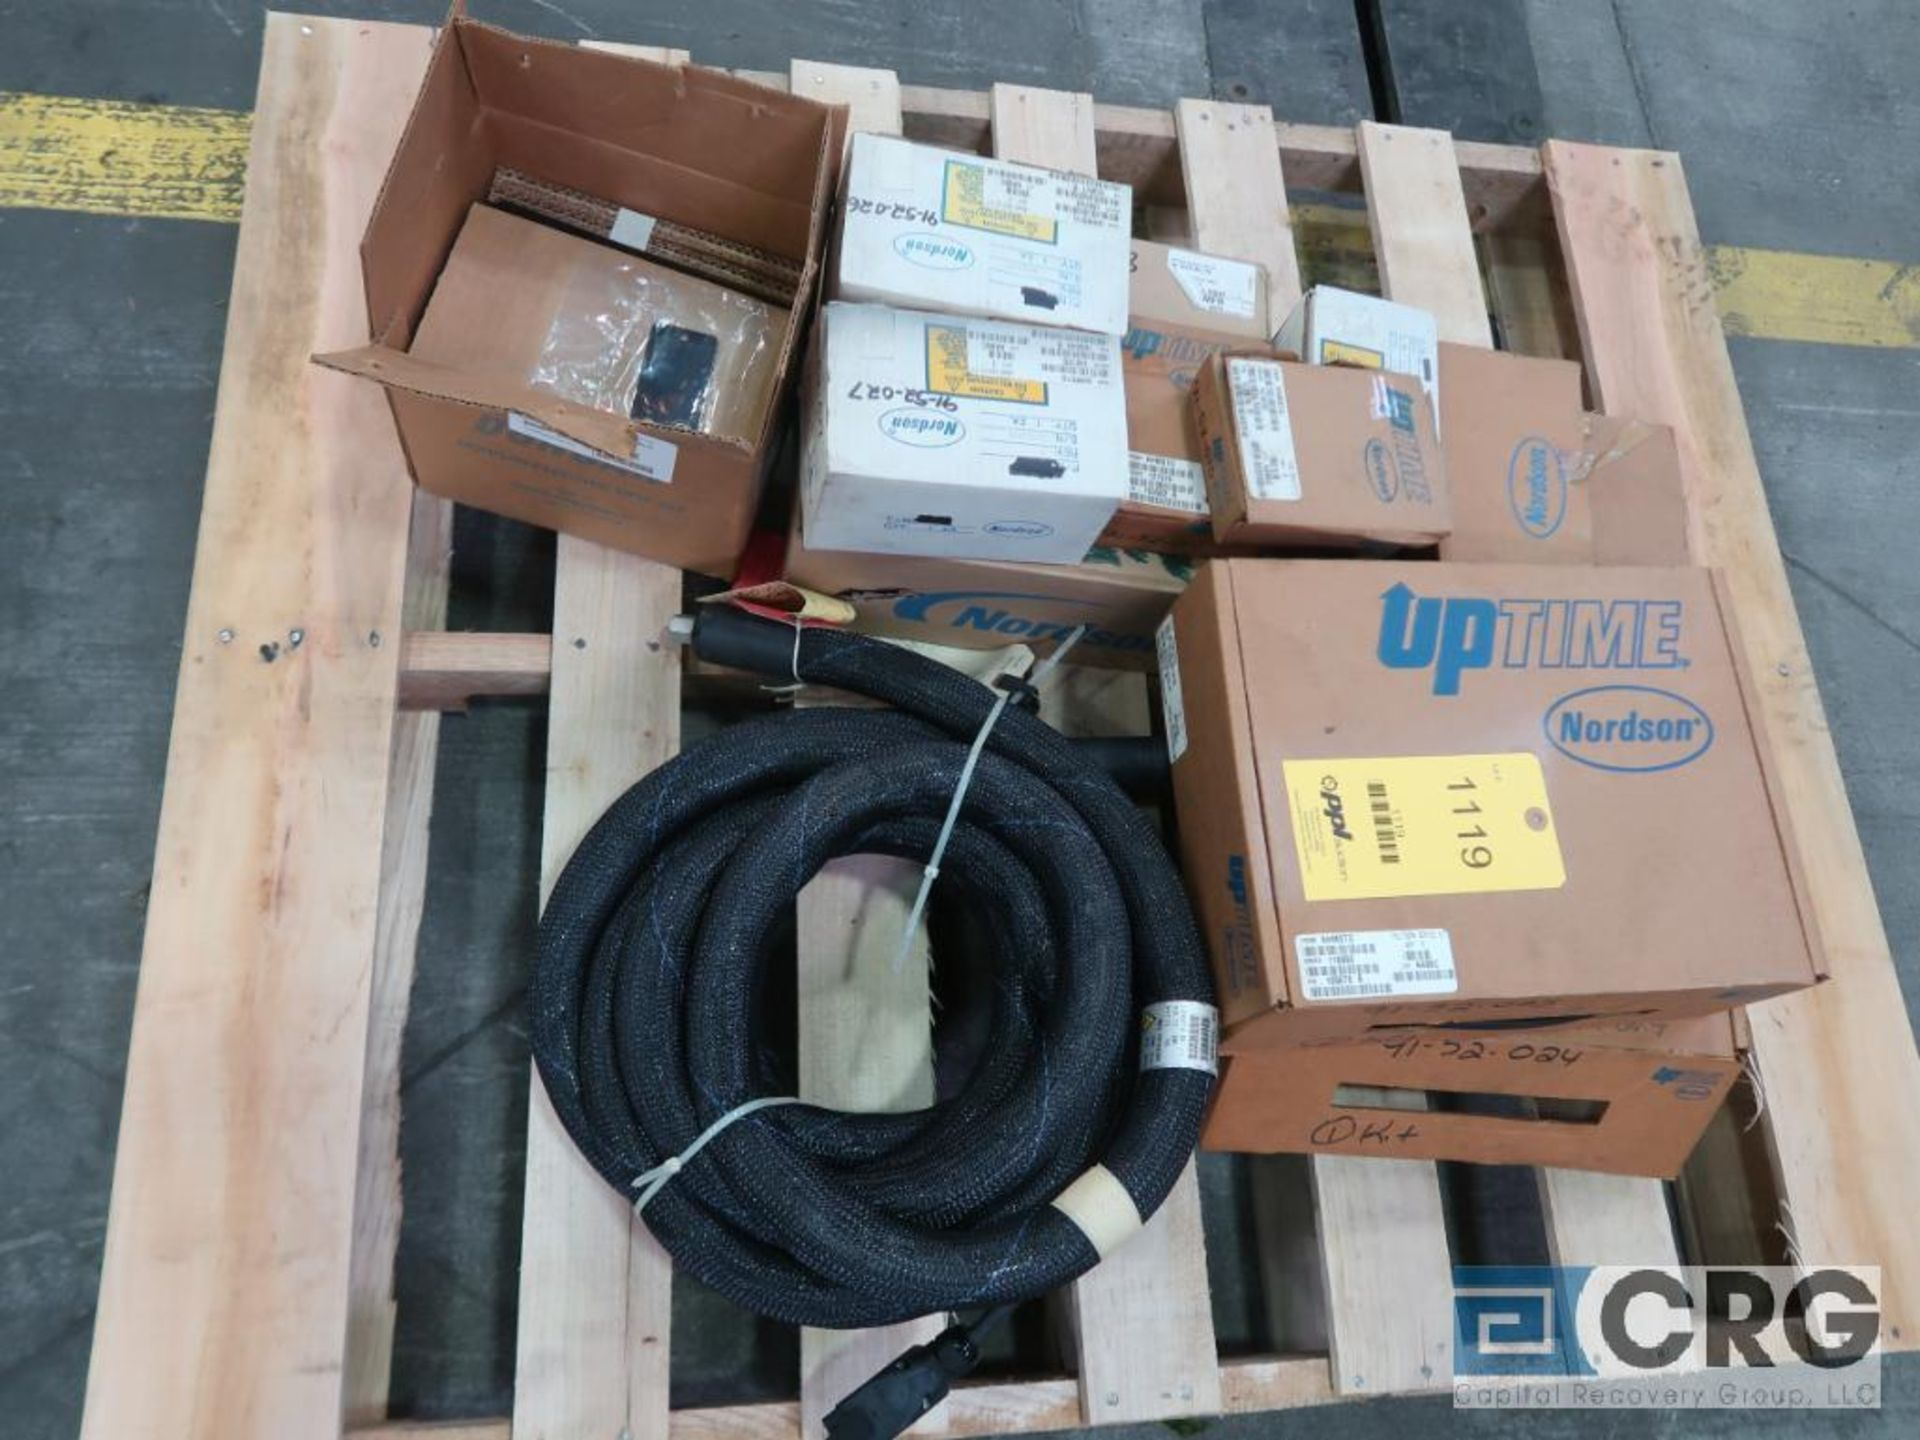 Lot of Nordson assorted parts including hoses and electrical (Finish Building)